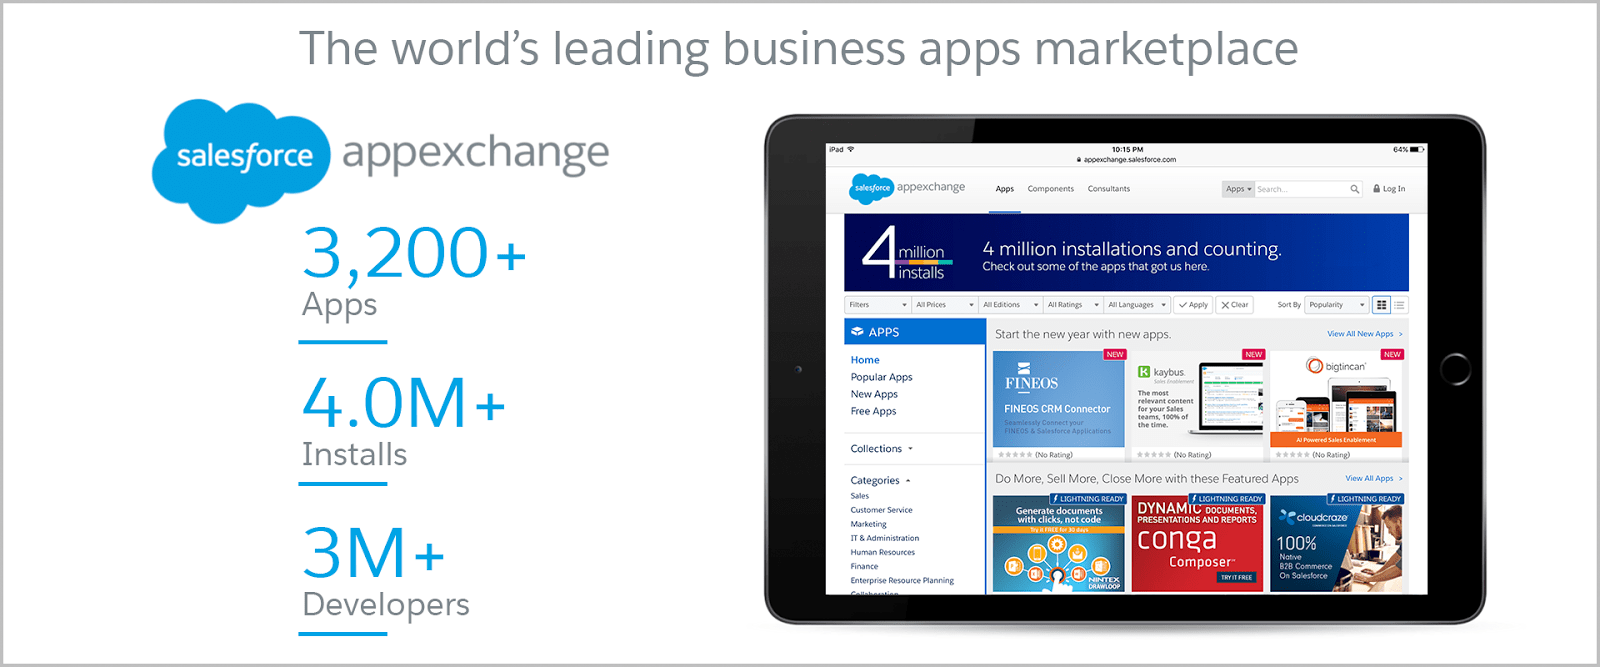 The world's leading business app marketplace is the Salesforce AppExchange. Browse over 3,200 apps available for download.